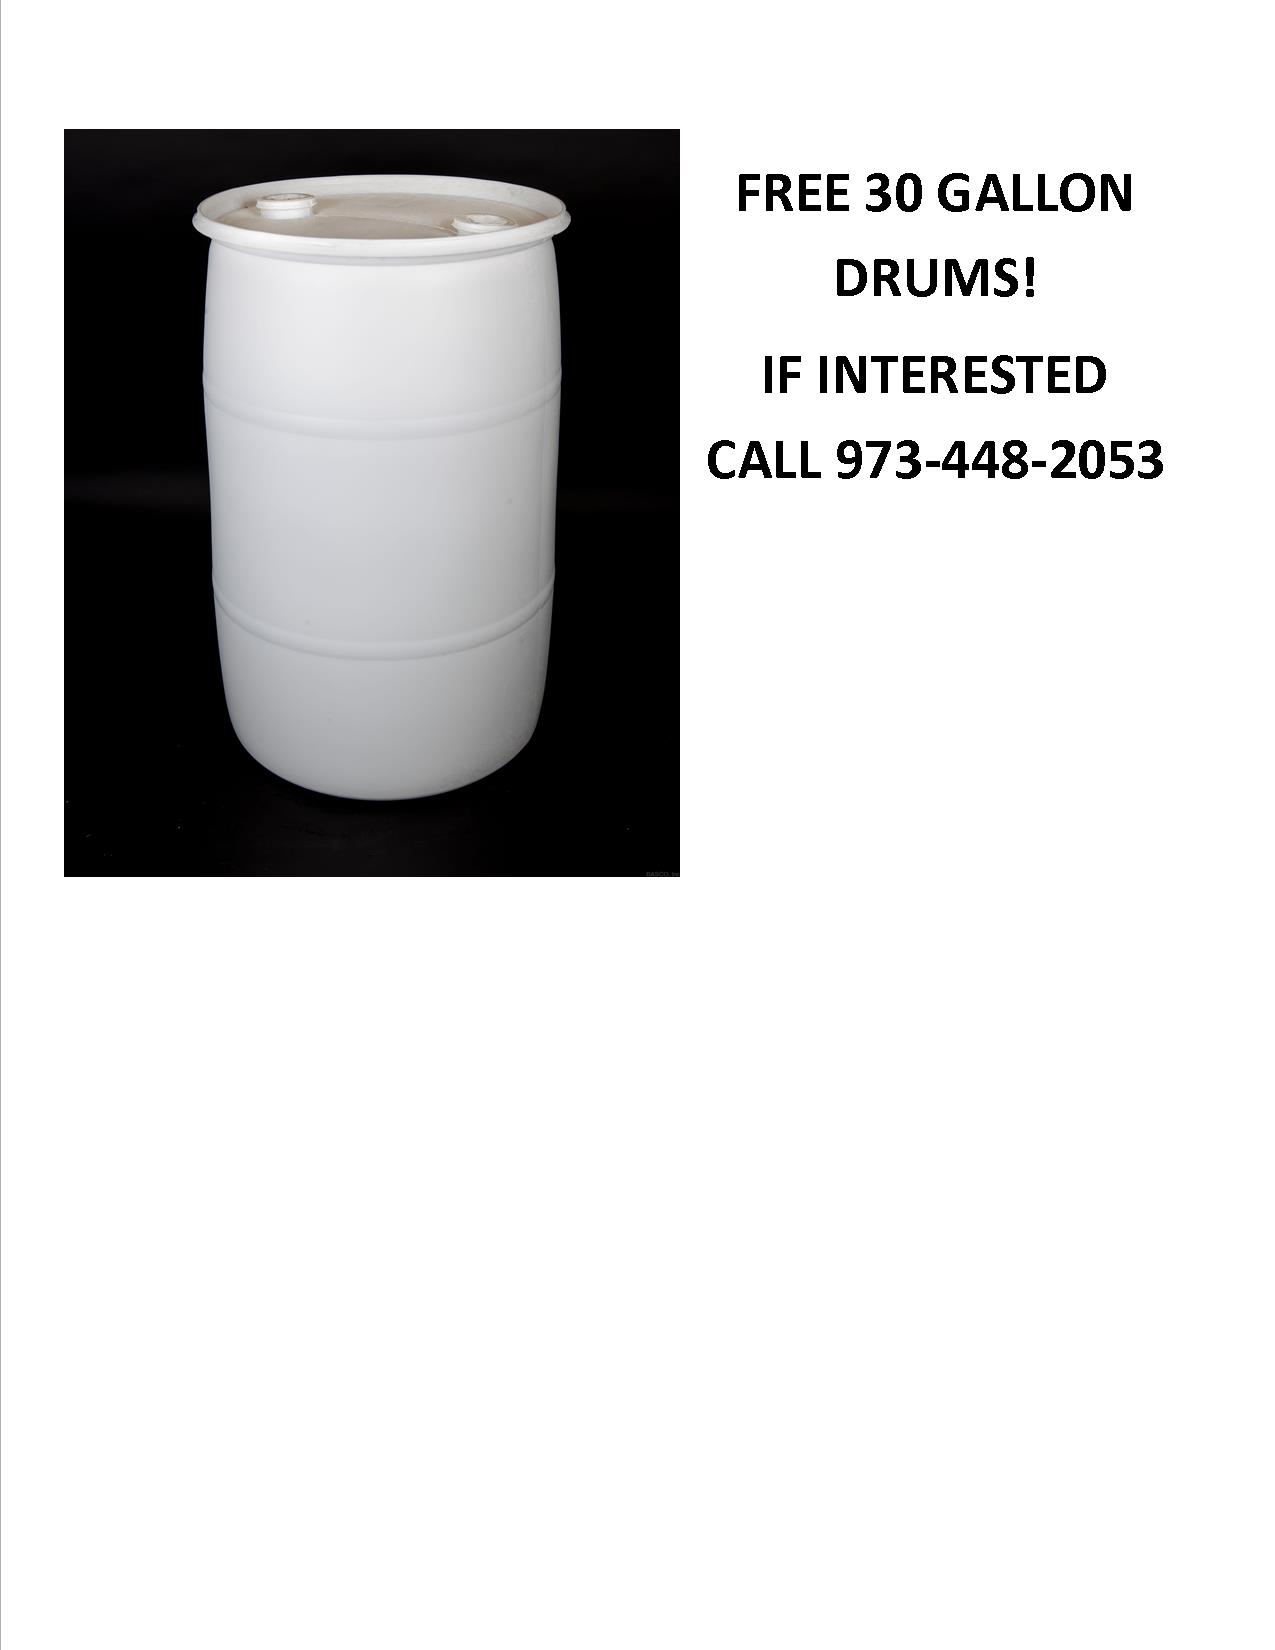 30 gallon drum offer